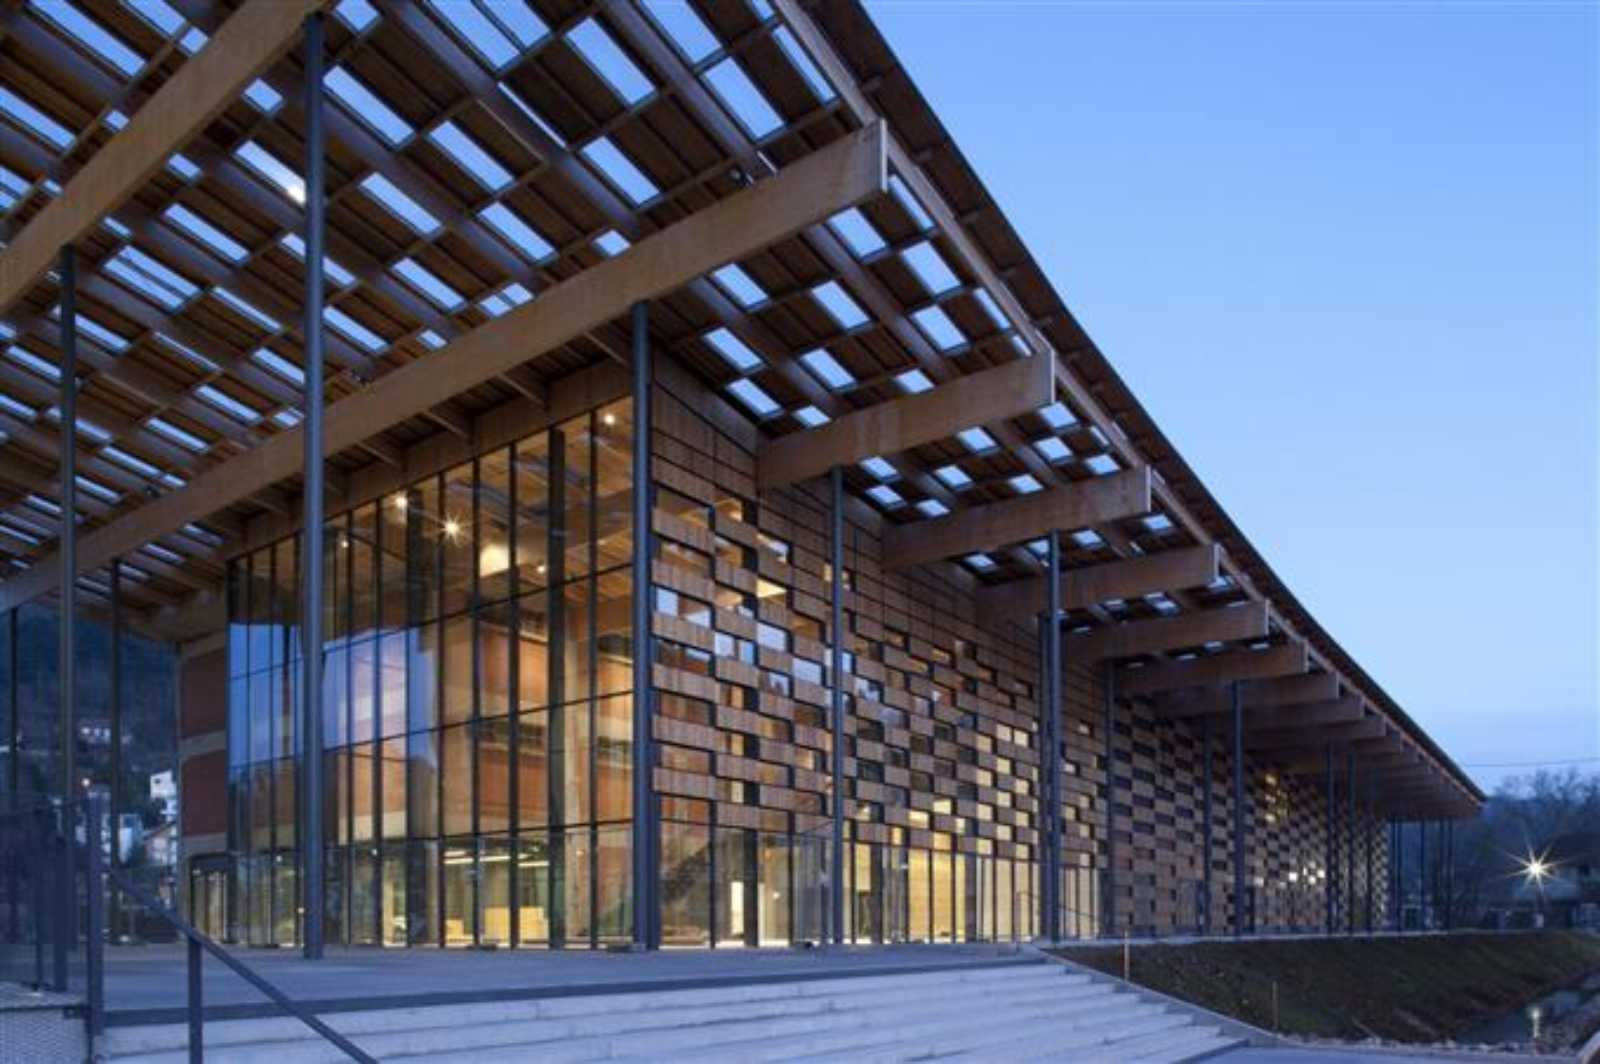 Art center and cit de la musique by kengo kuma - Besancon cite des arts ...